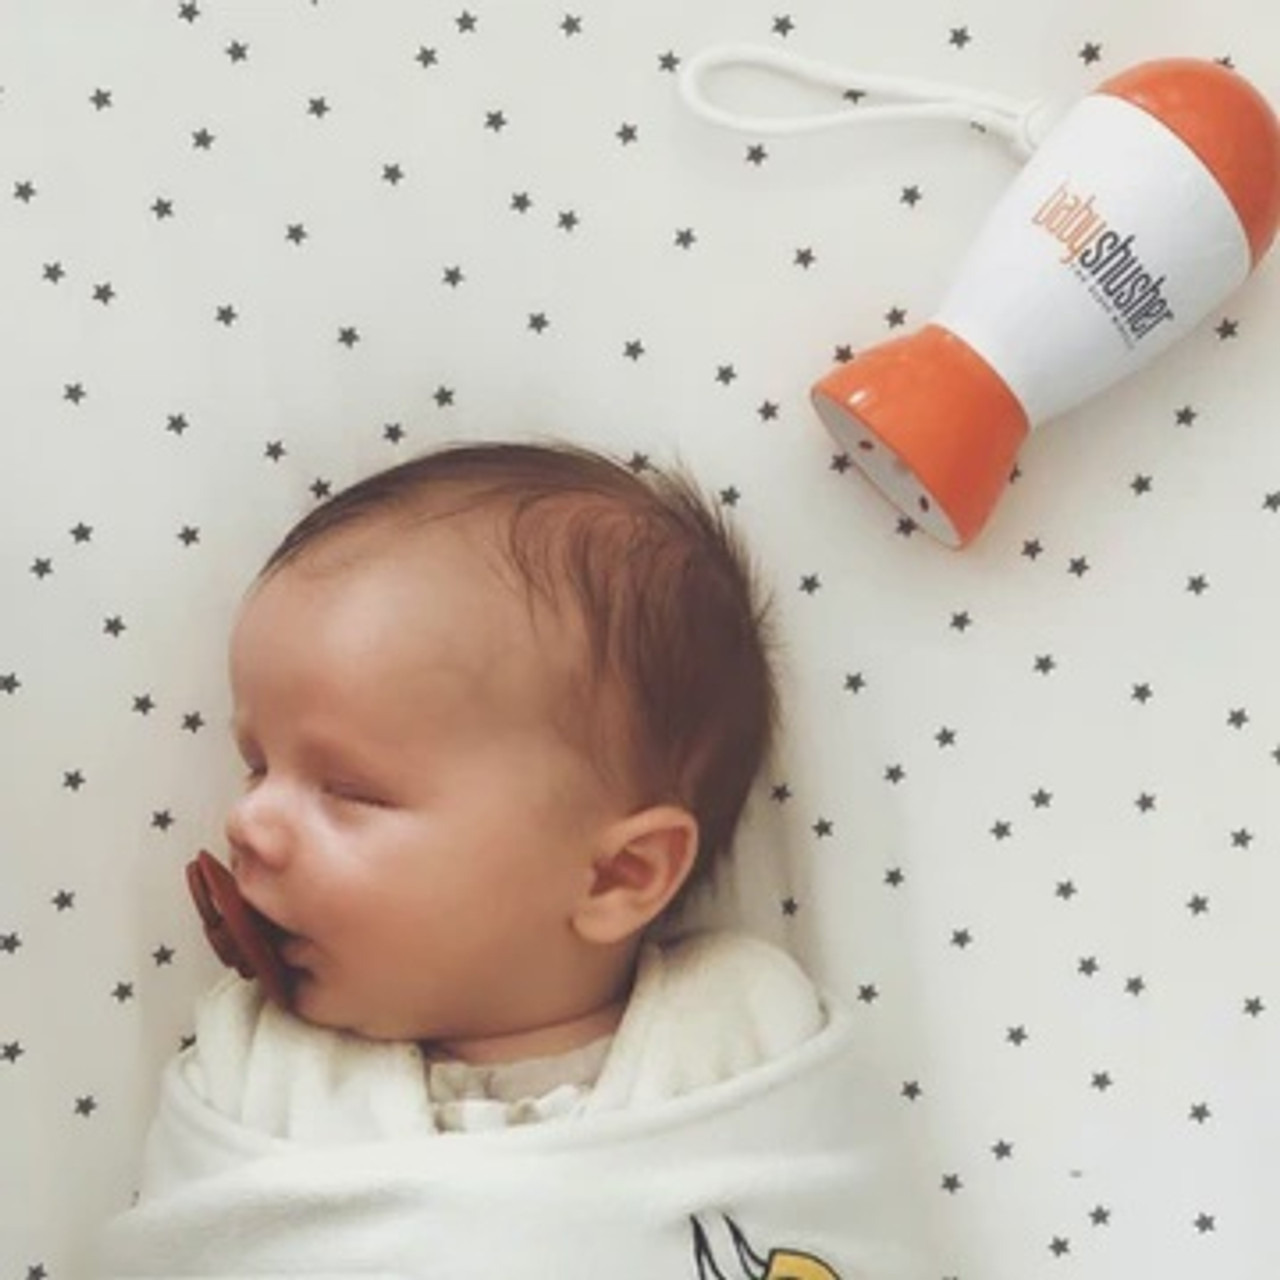 The Baby Shusher at Baby Barn Discounts The Baby Shusher™ is the award winning sleep product used by parents internationally. This fantastic little device soothes baby by breaking their crying spell and helping them engage their own natural calming reflex.